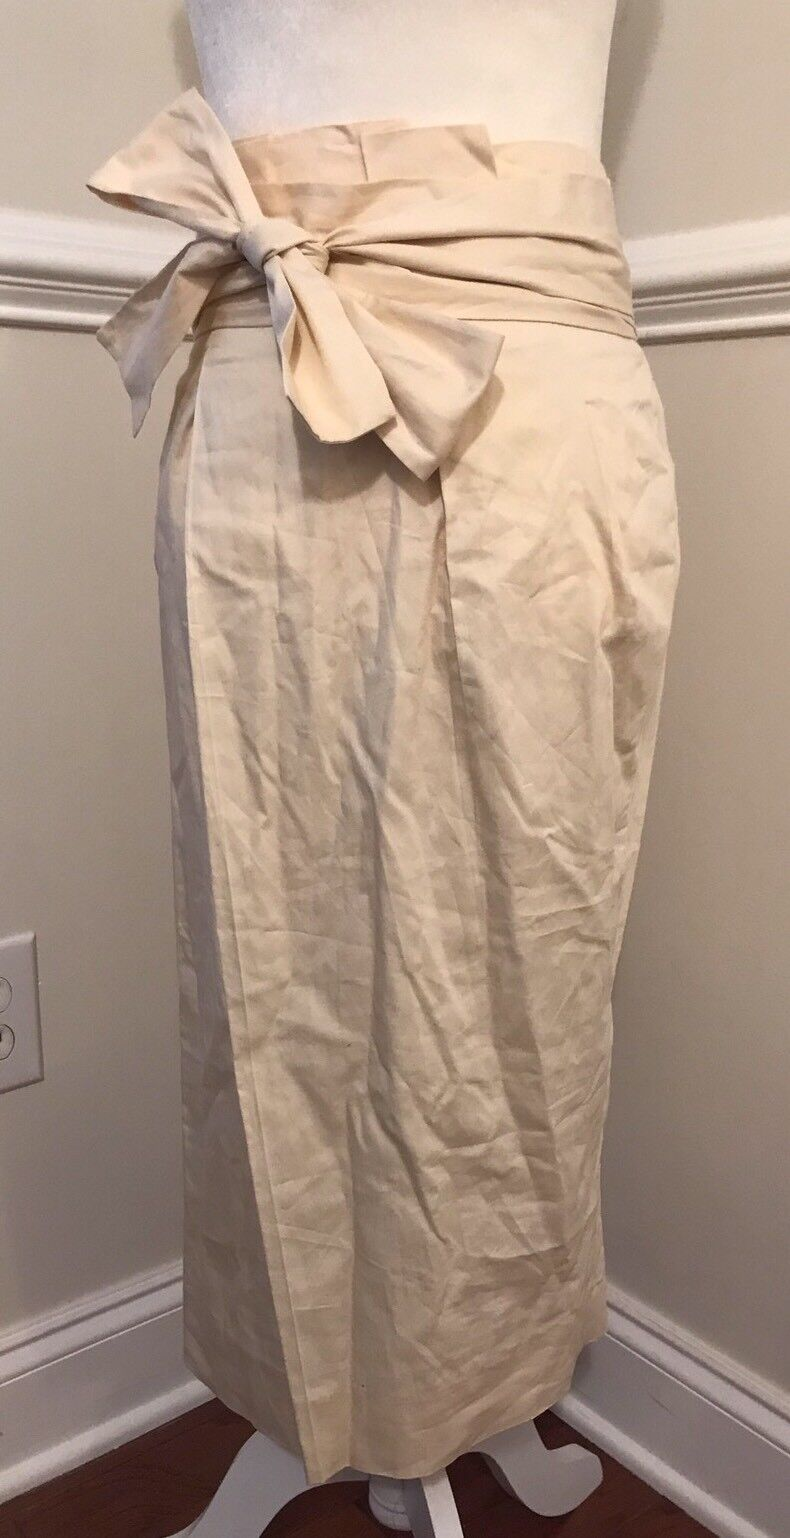 NEW J. CREW PAPER-BAG SKIRT IN TWILL IN IVORY SZ 0 G1527